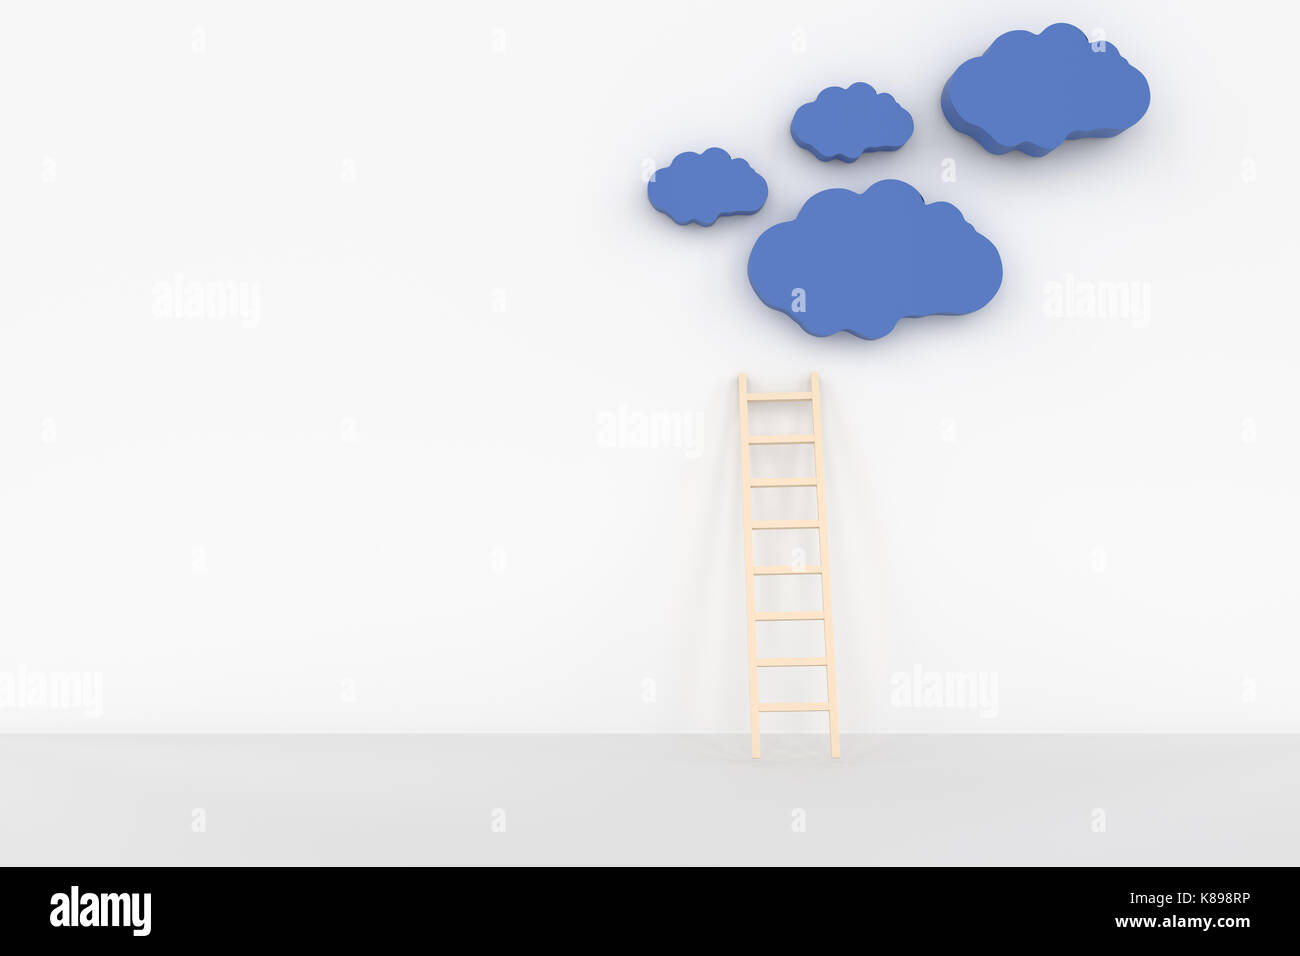 3d rendering of clound and ladder concept - Stock Image